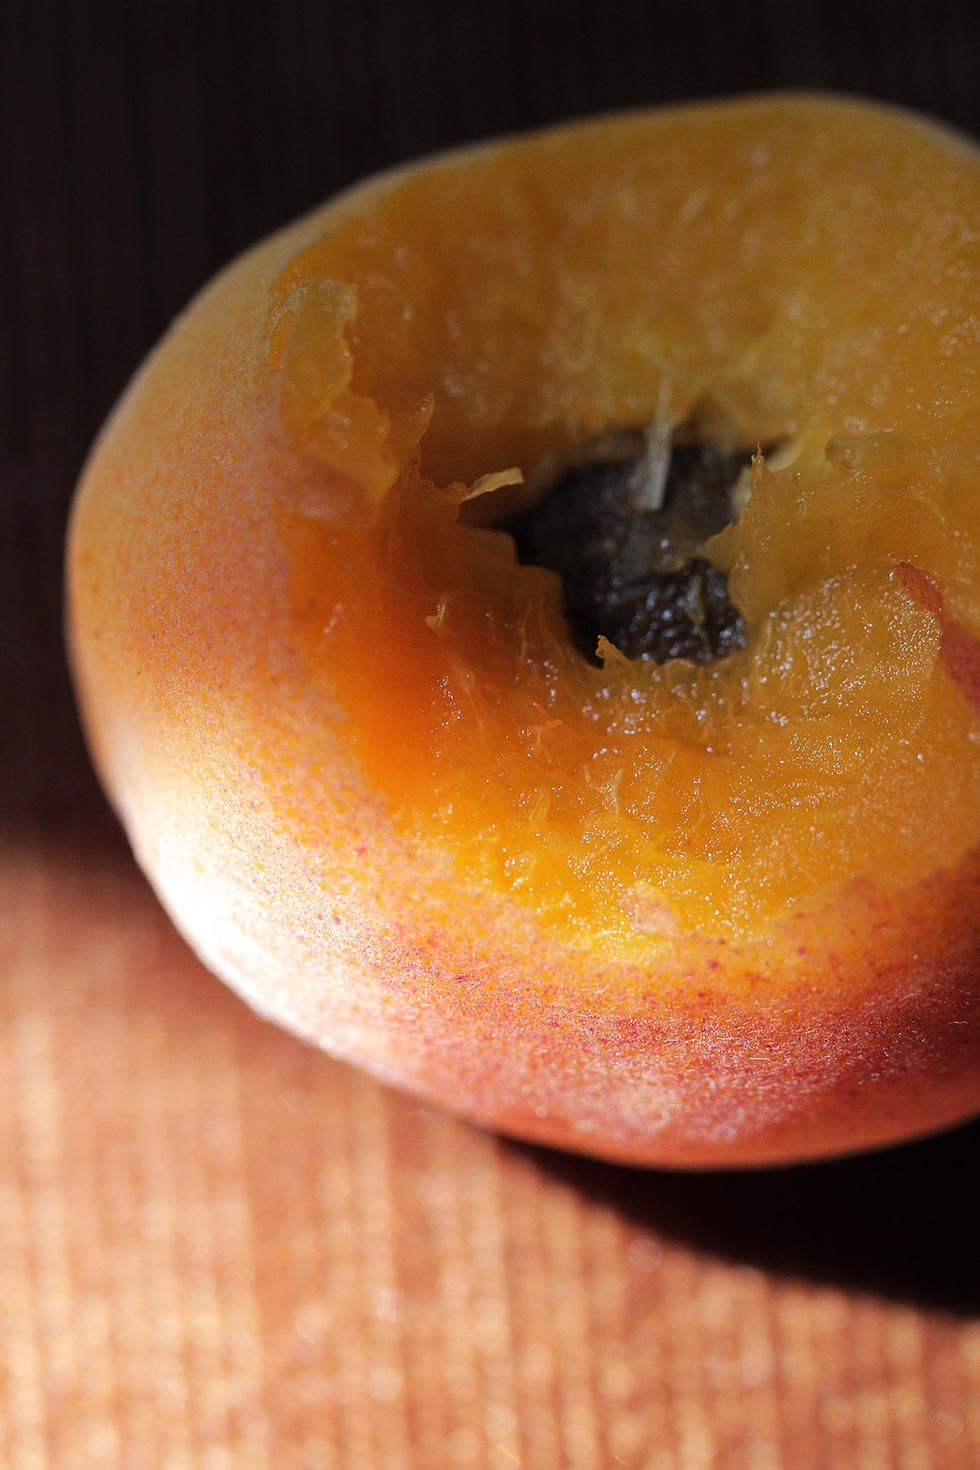 All about apricots!